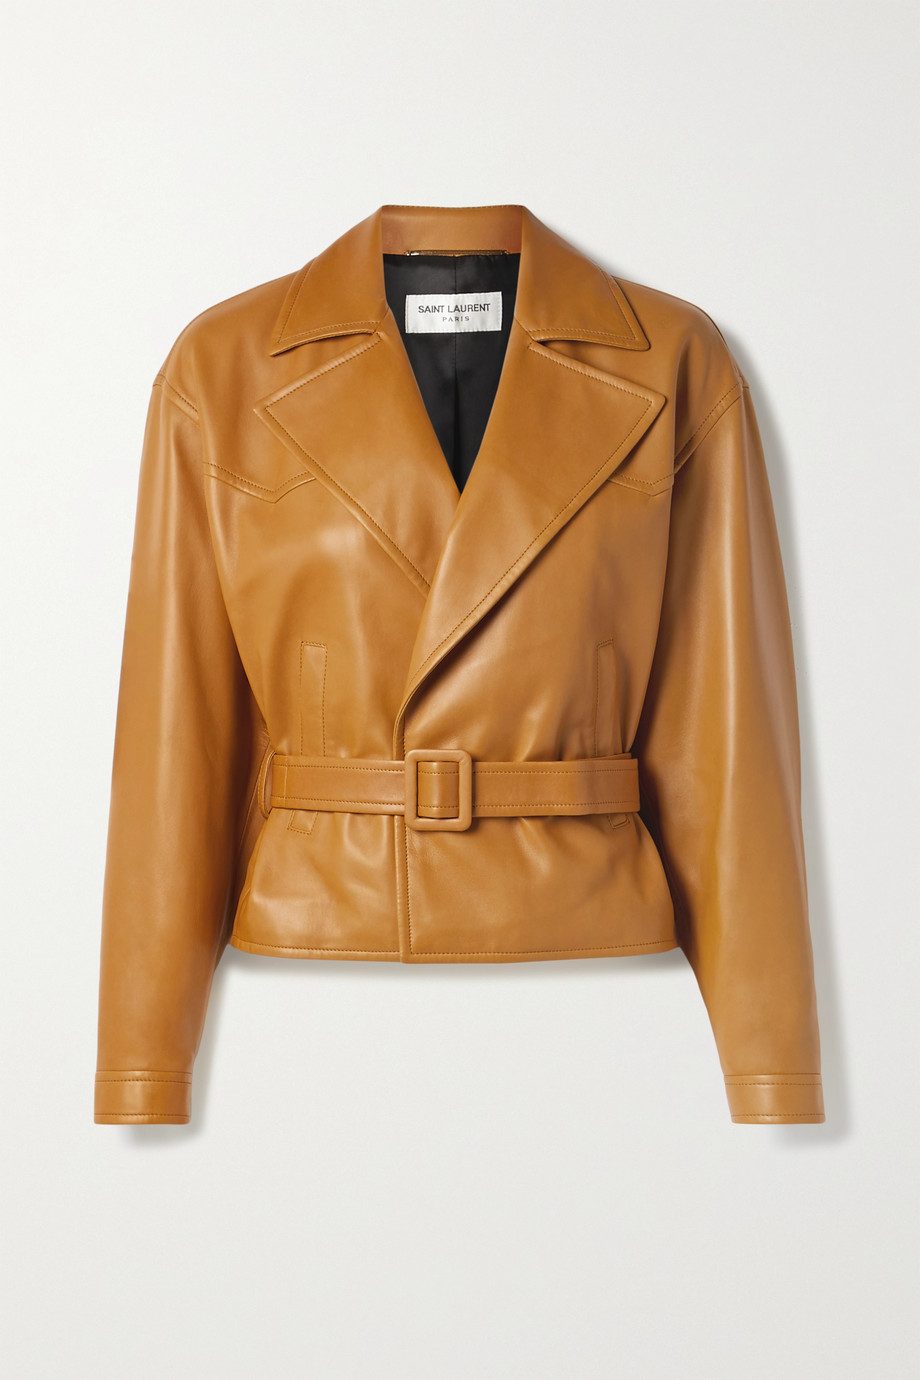 SAINT LAURENT Belted leather biker jacket